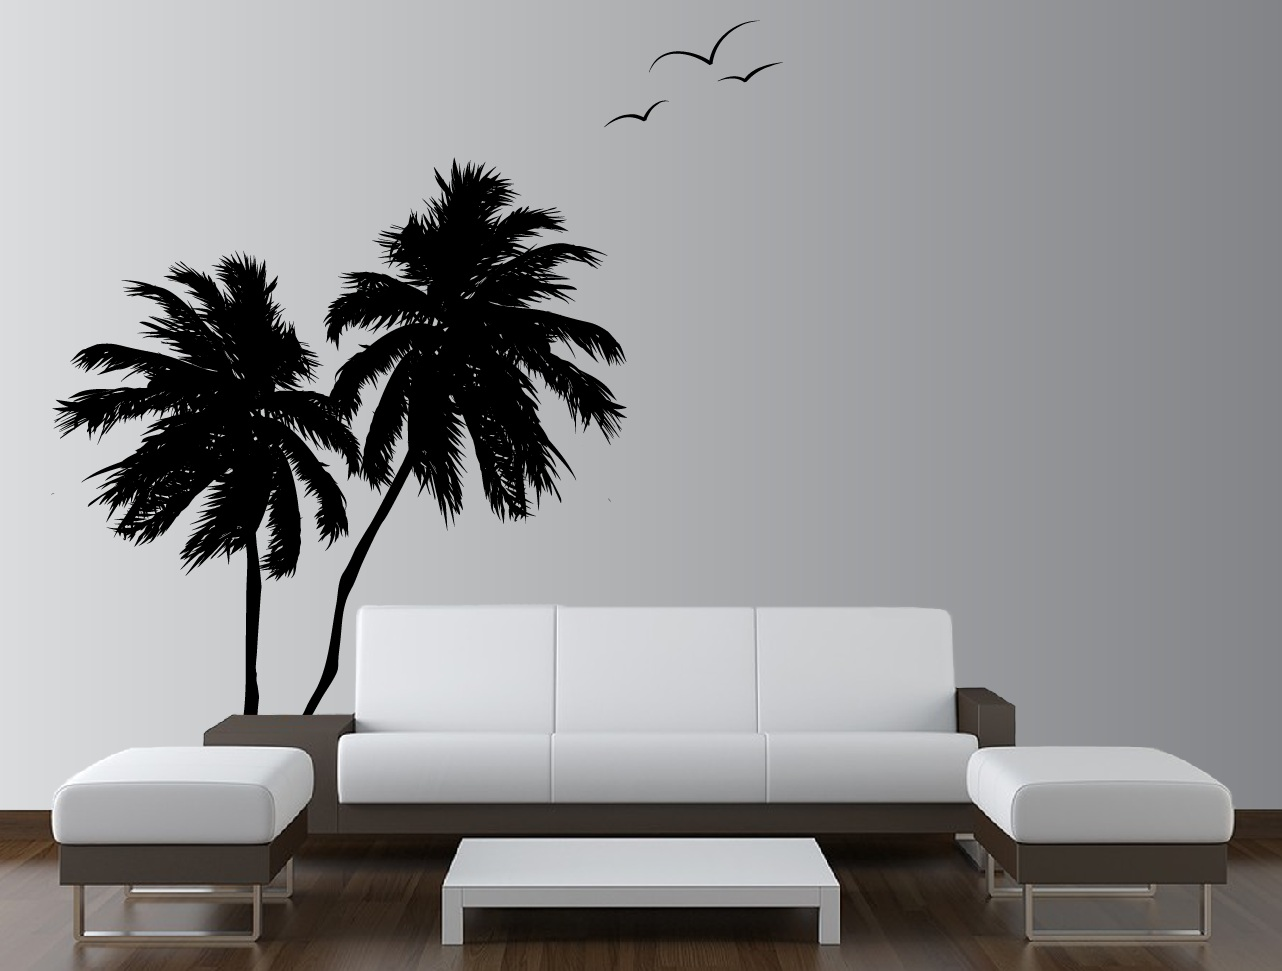 palm coconut tree wall decal with seagull birds 2 trees 1133 innovativestencils. Black Bedroom Furniture Sets. Home Design Ideas